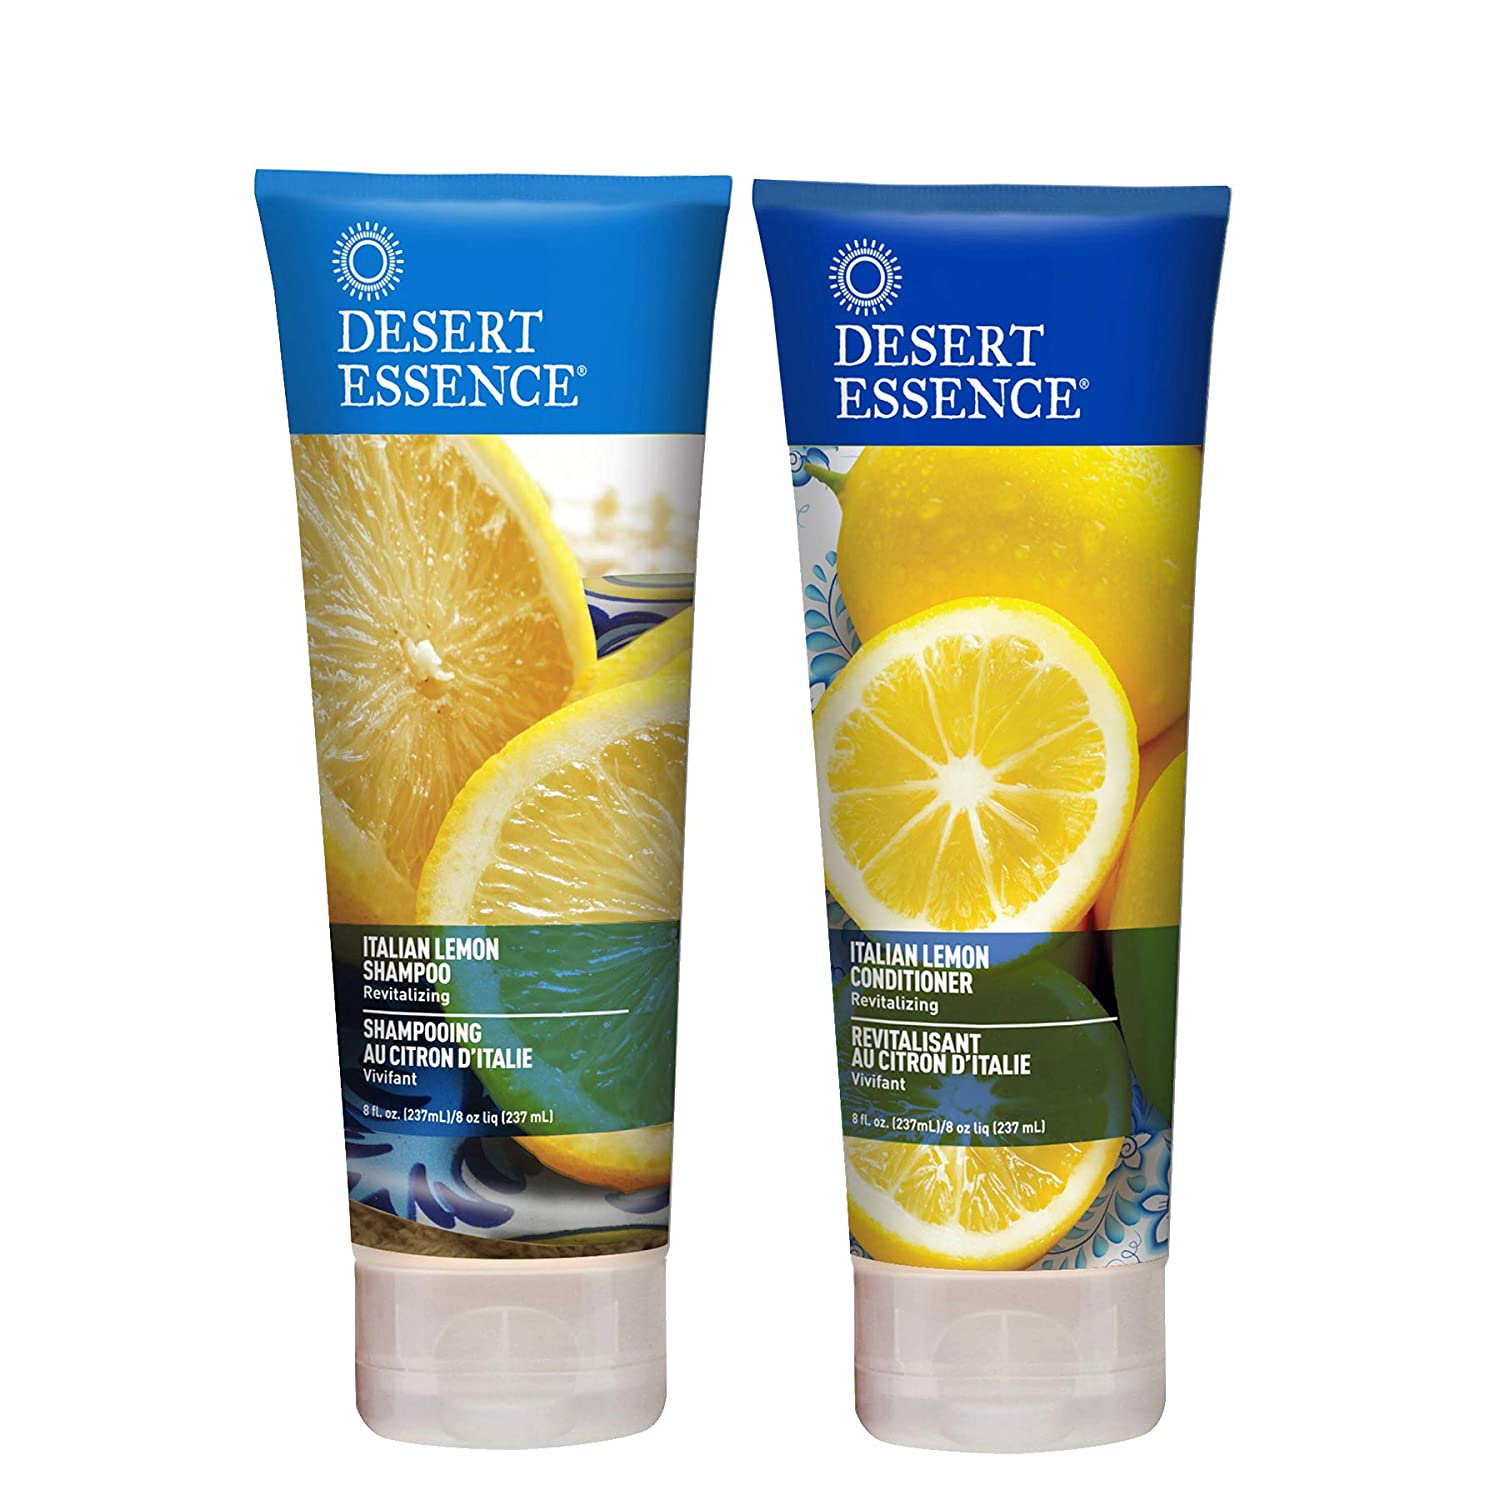 Desert Essence Italian Lemon Shampoo & Conditioner Bundle - 8 Fl Ounce - Revitalizing - Aloe Vera - Vitamin B5 - Adds Volume, Shine & Strength - Hair Detangler